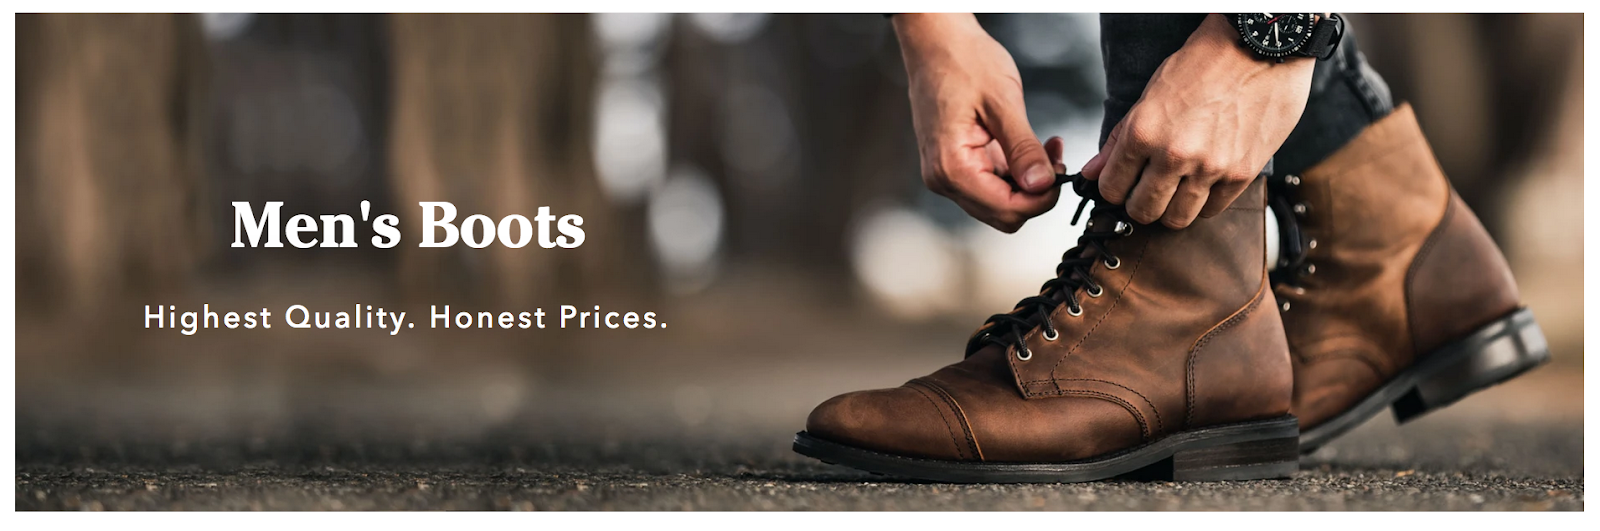 Men's Highest Quality Boots   Thursday Boot Company